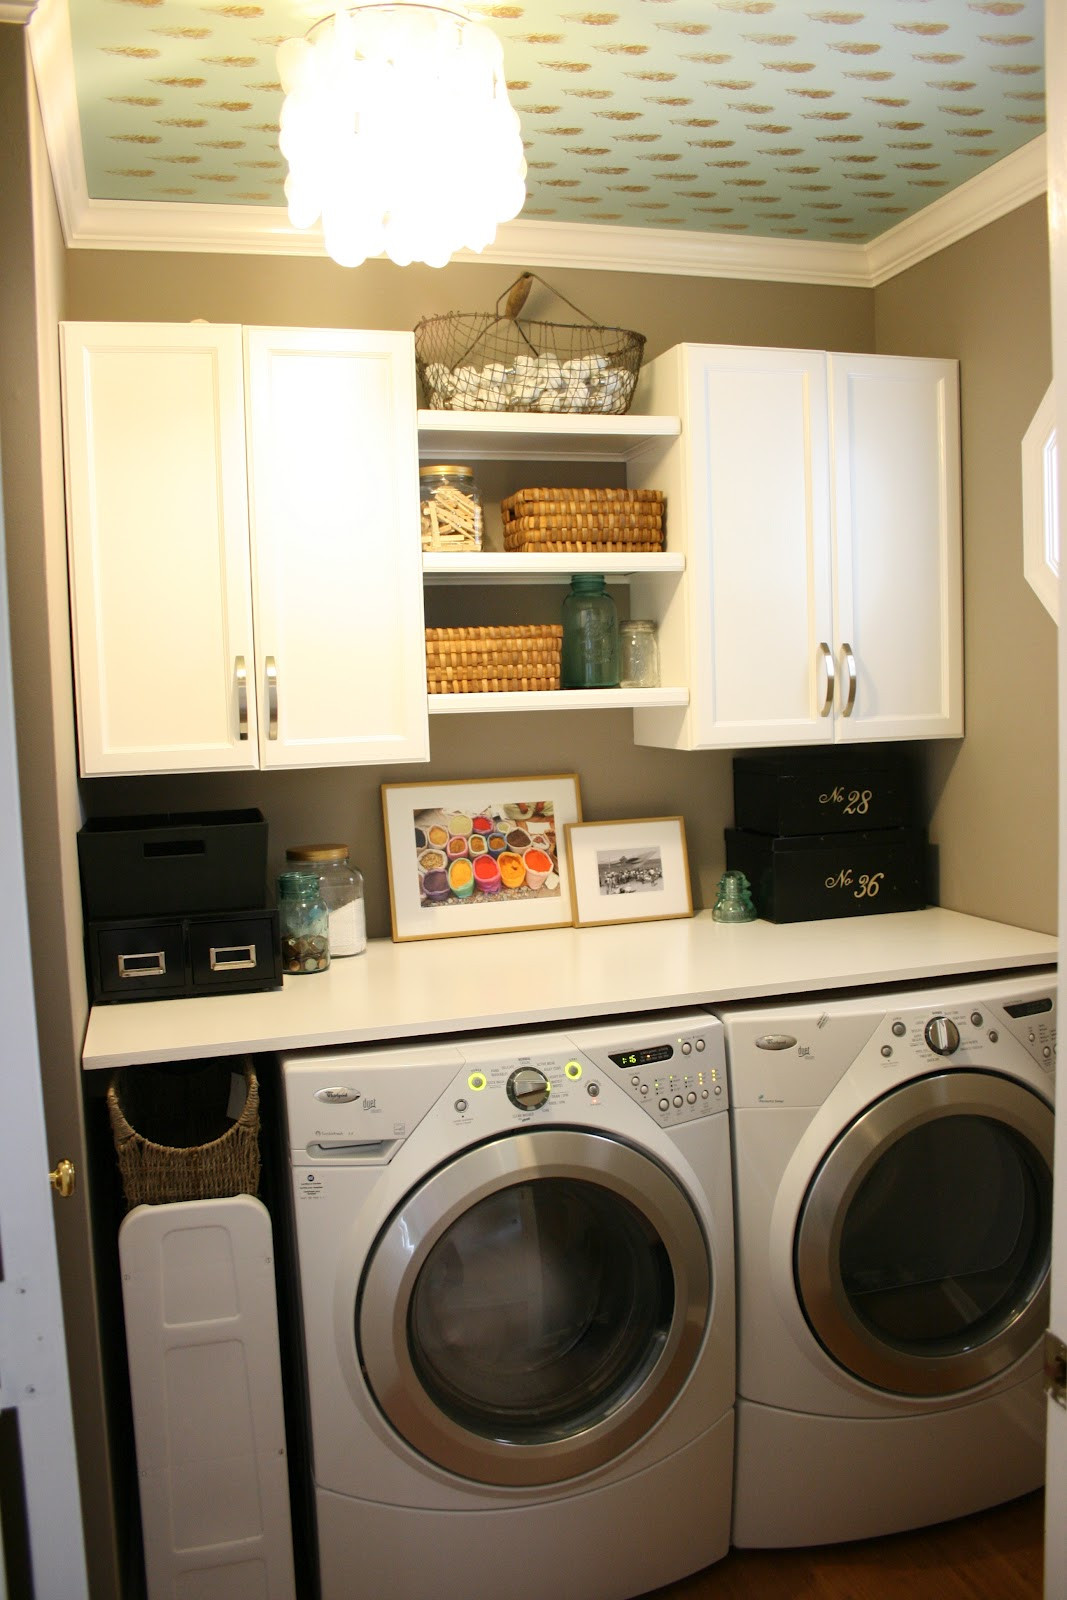 Best ideas about The Laundry Room . Save or Pin The Boutons Laundry Room Now.